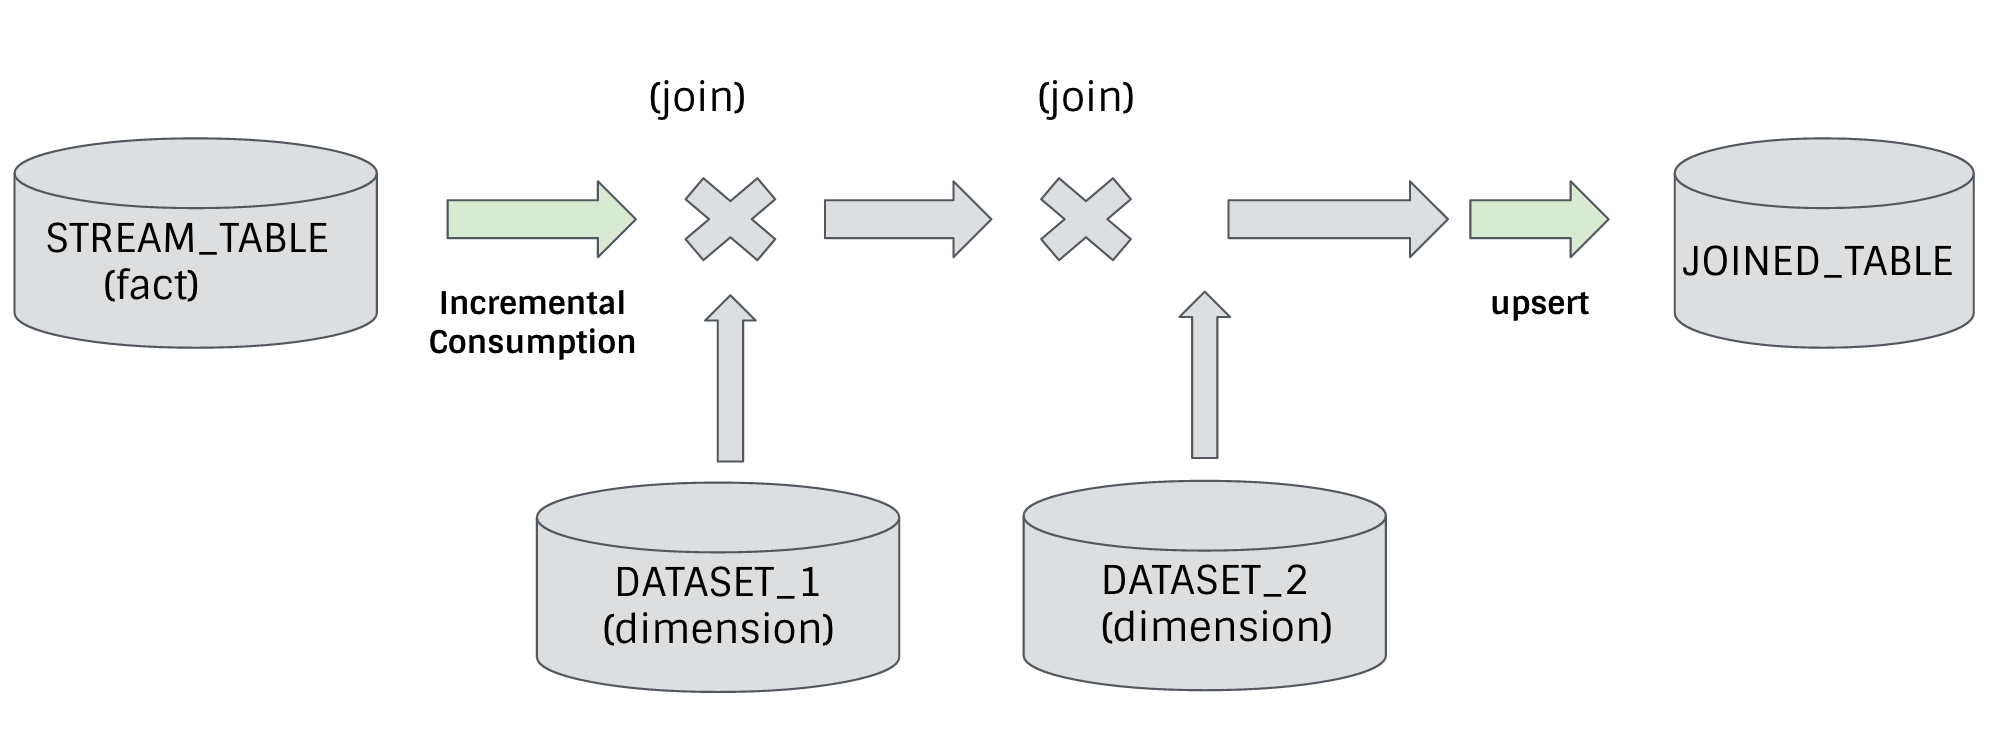 joins a fact table against multiple dimension tables, to produce a joined table